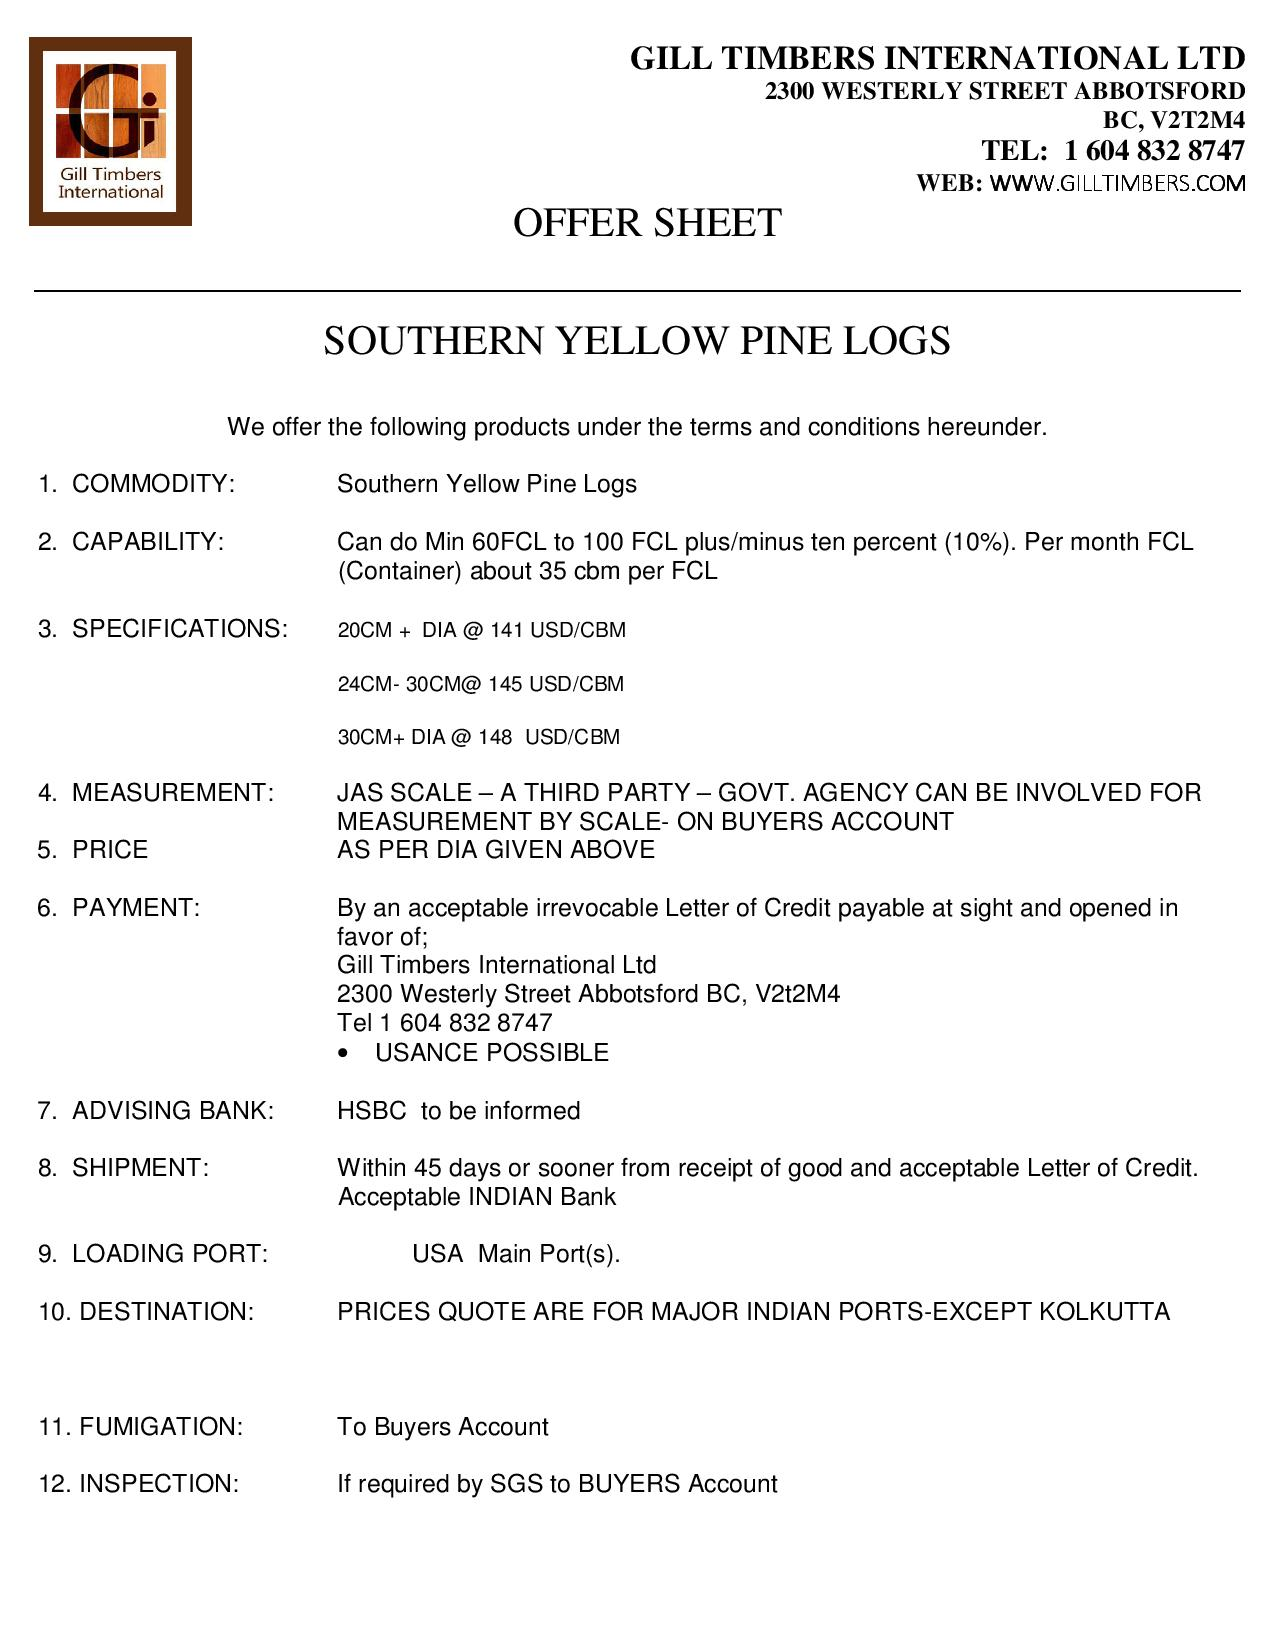 SOUTHERN YELLOW PINE LOGS-page-001